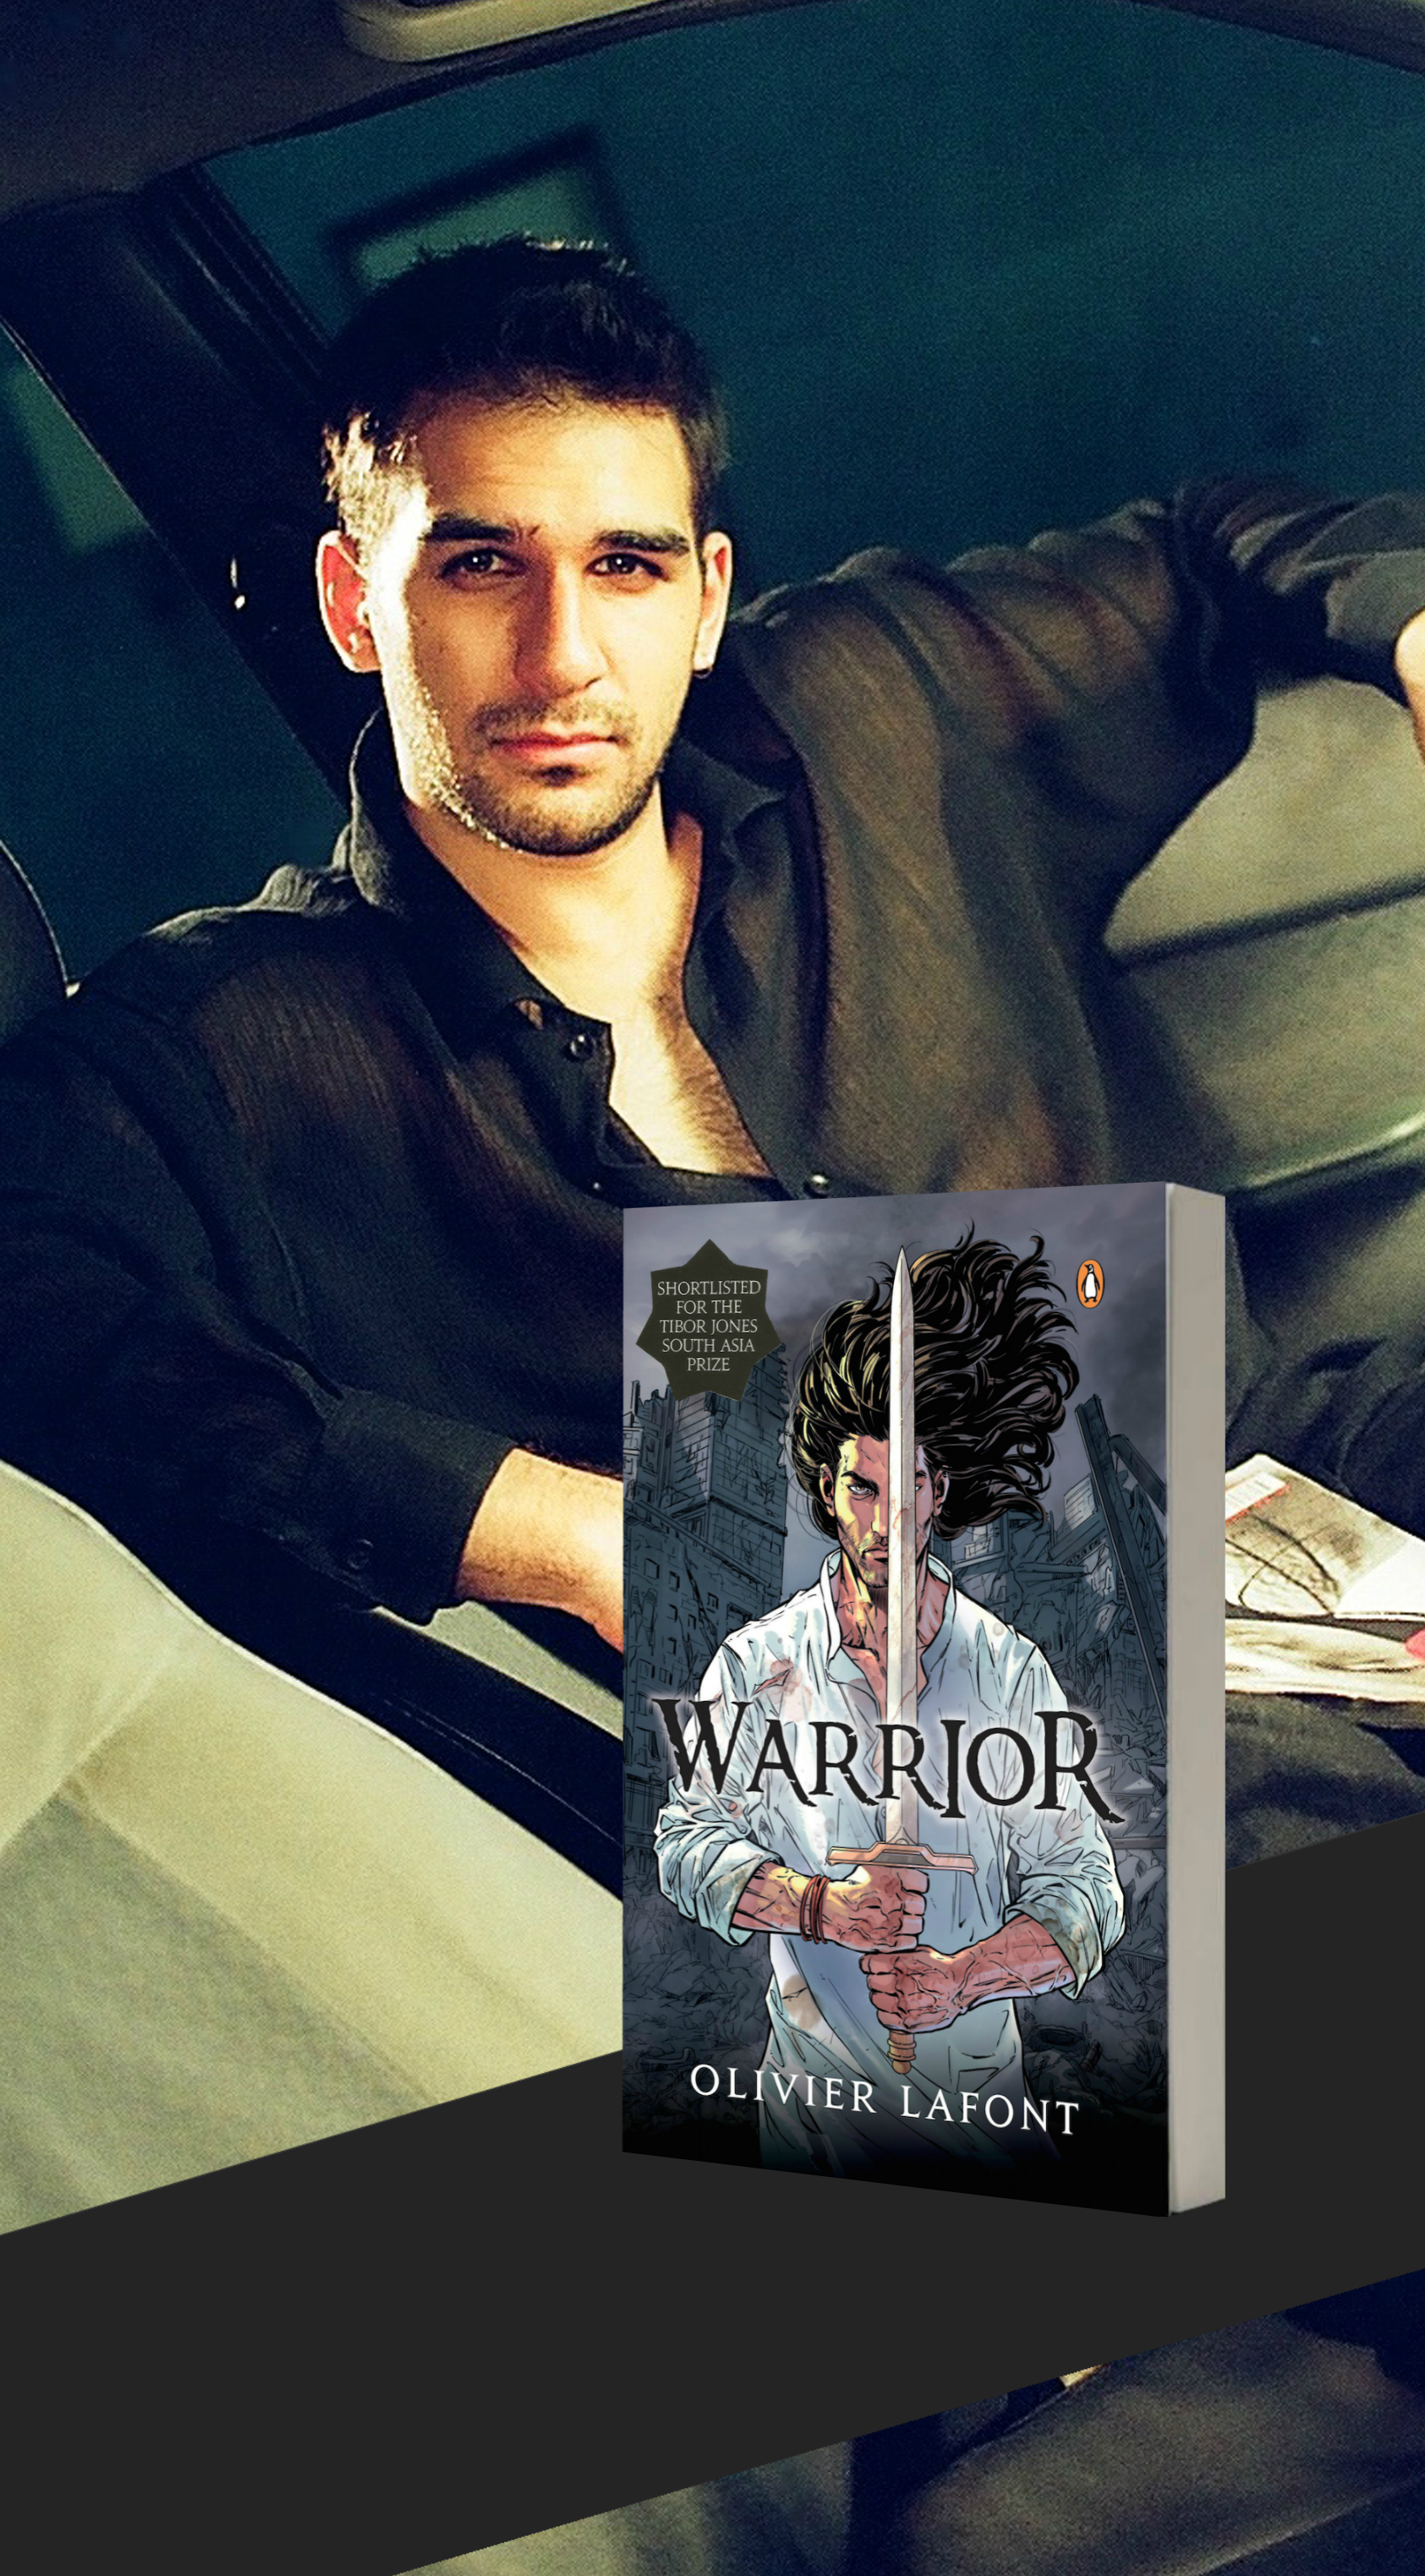 Taking on Shiva: An Interview with model turned author Olivier Lafont